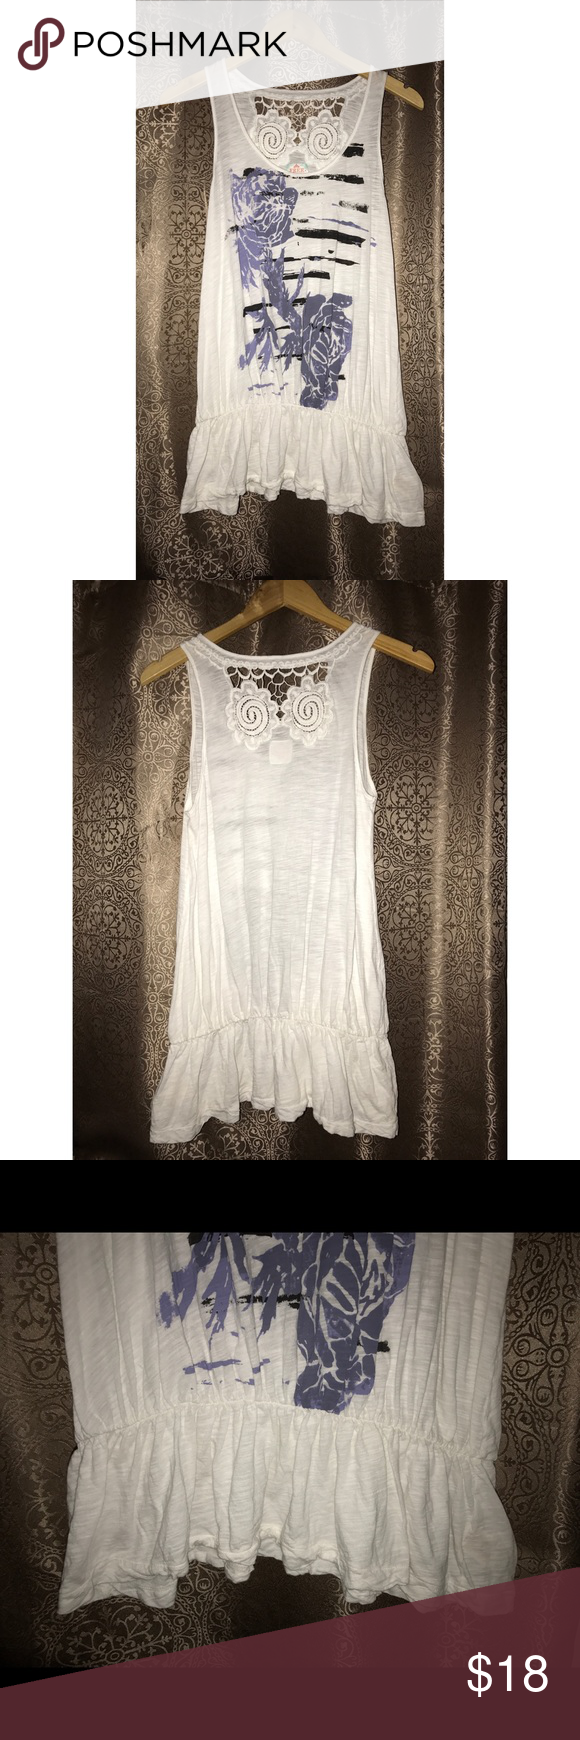 Free People Floral Lace White Tank Top Size Small Pre-owned, in great condition. Free People white and purple floral tee. Lace upper back. Size small. Made in Cambodia. 100% cotton. Free People Tops Tees - Short Sleeve